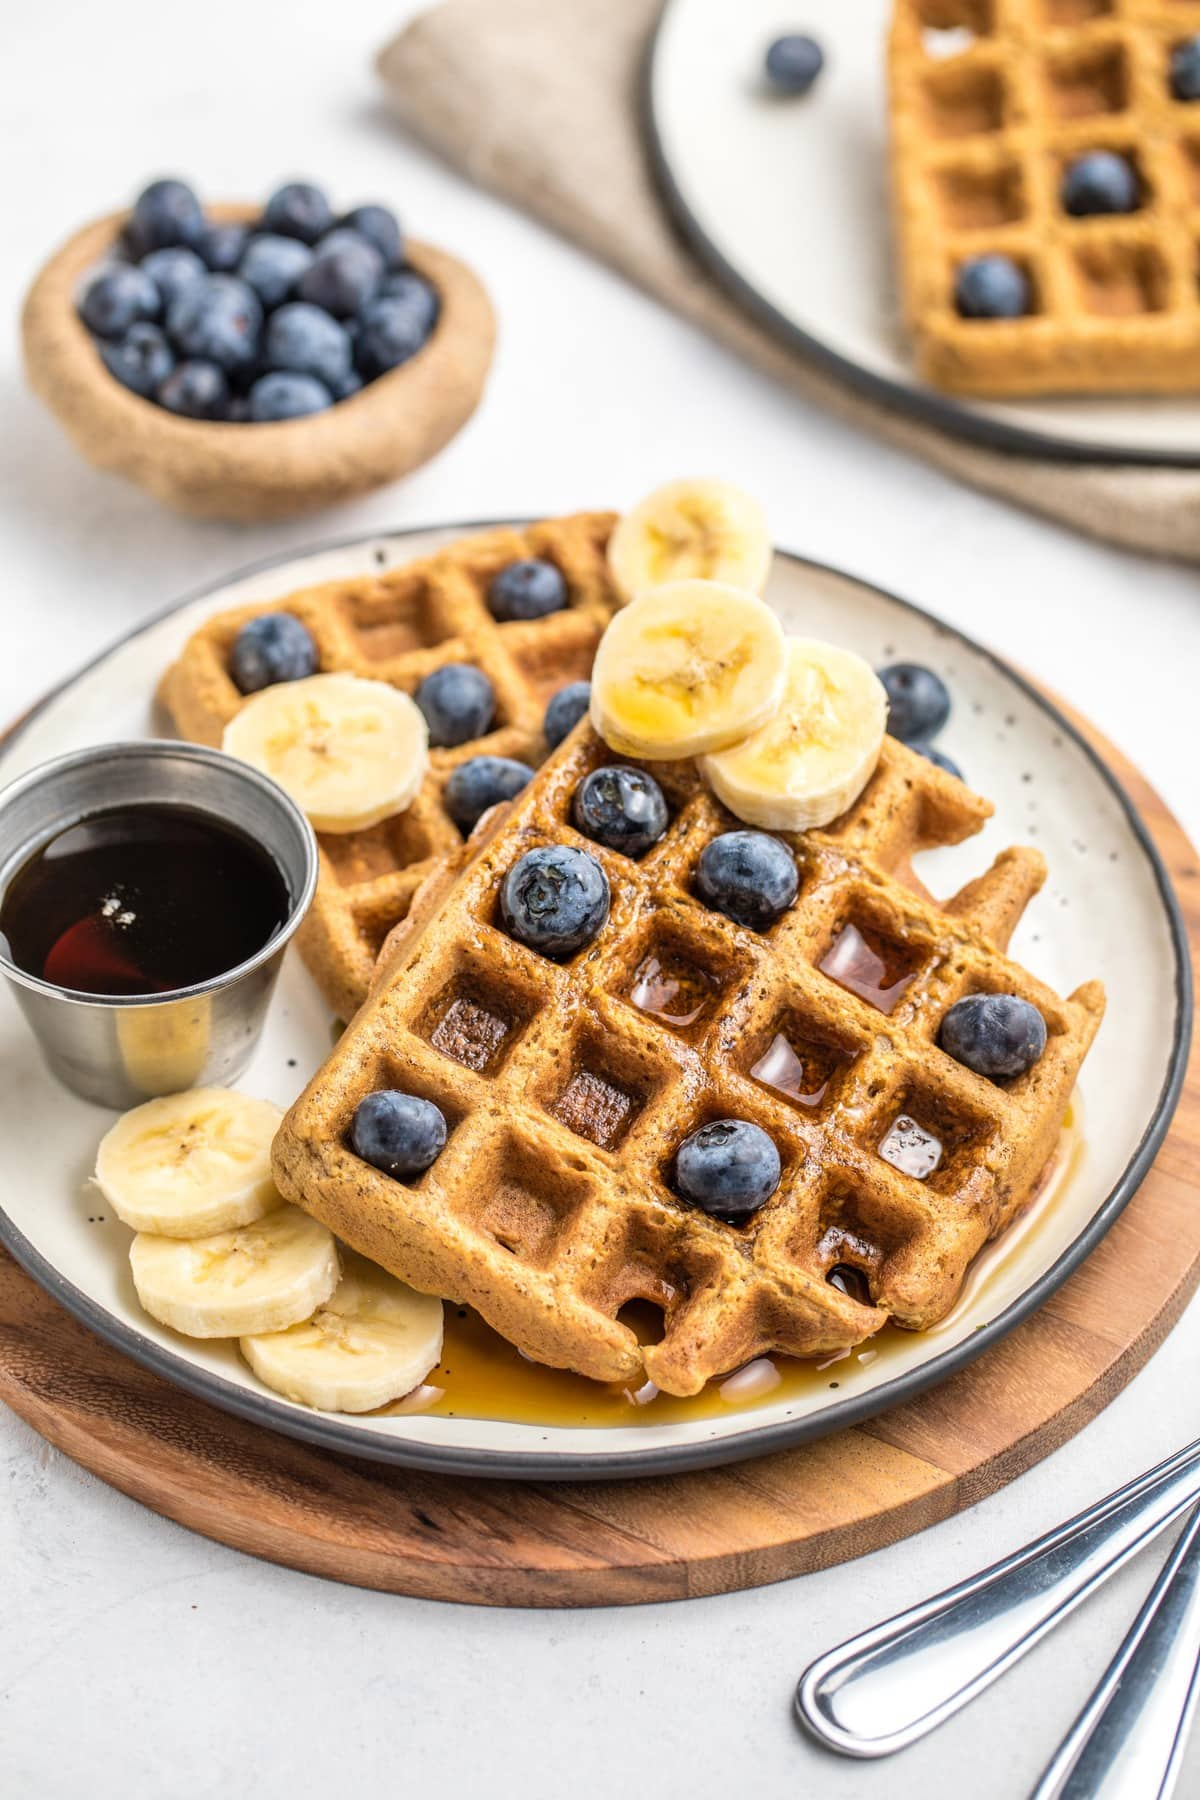 two vegan blender waffles with maple syrup drizzle, blueberries, and banana pieces